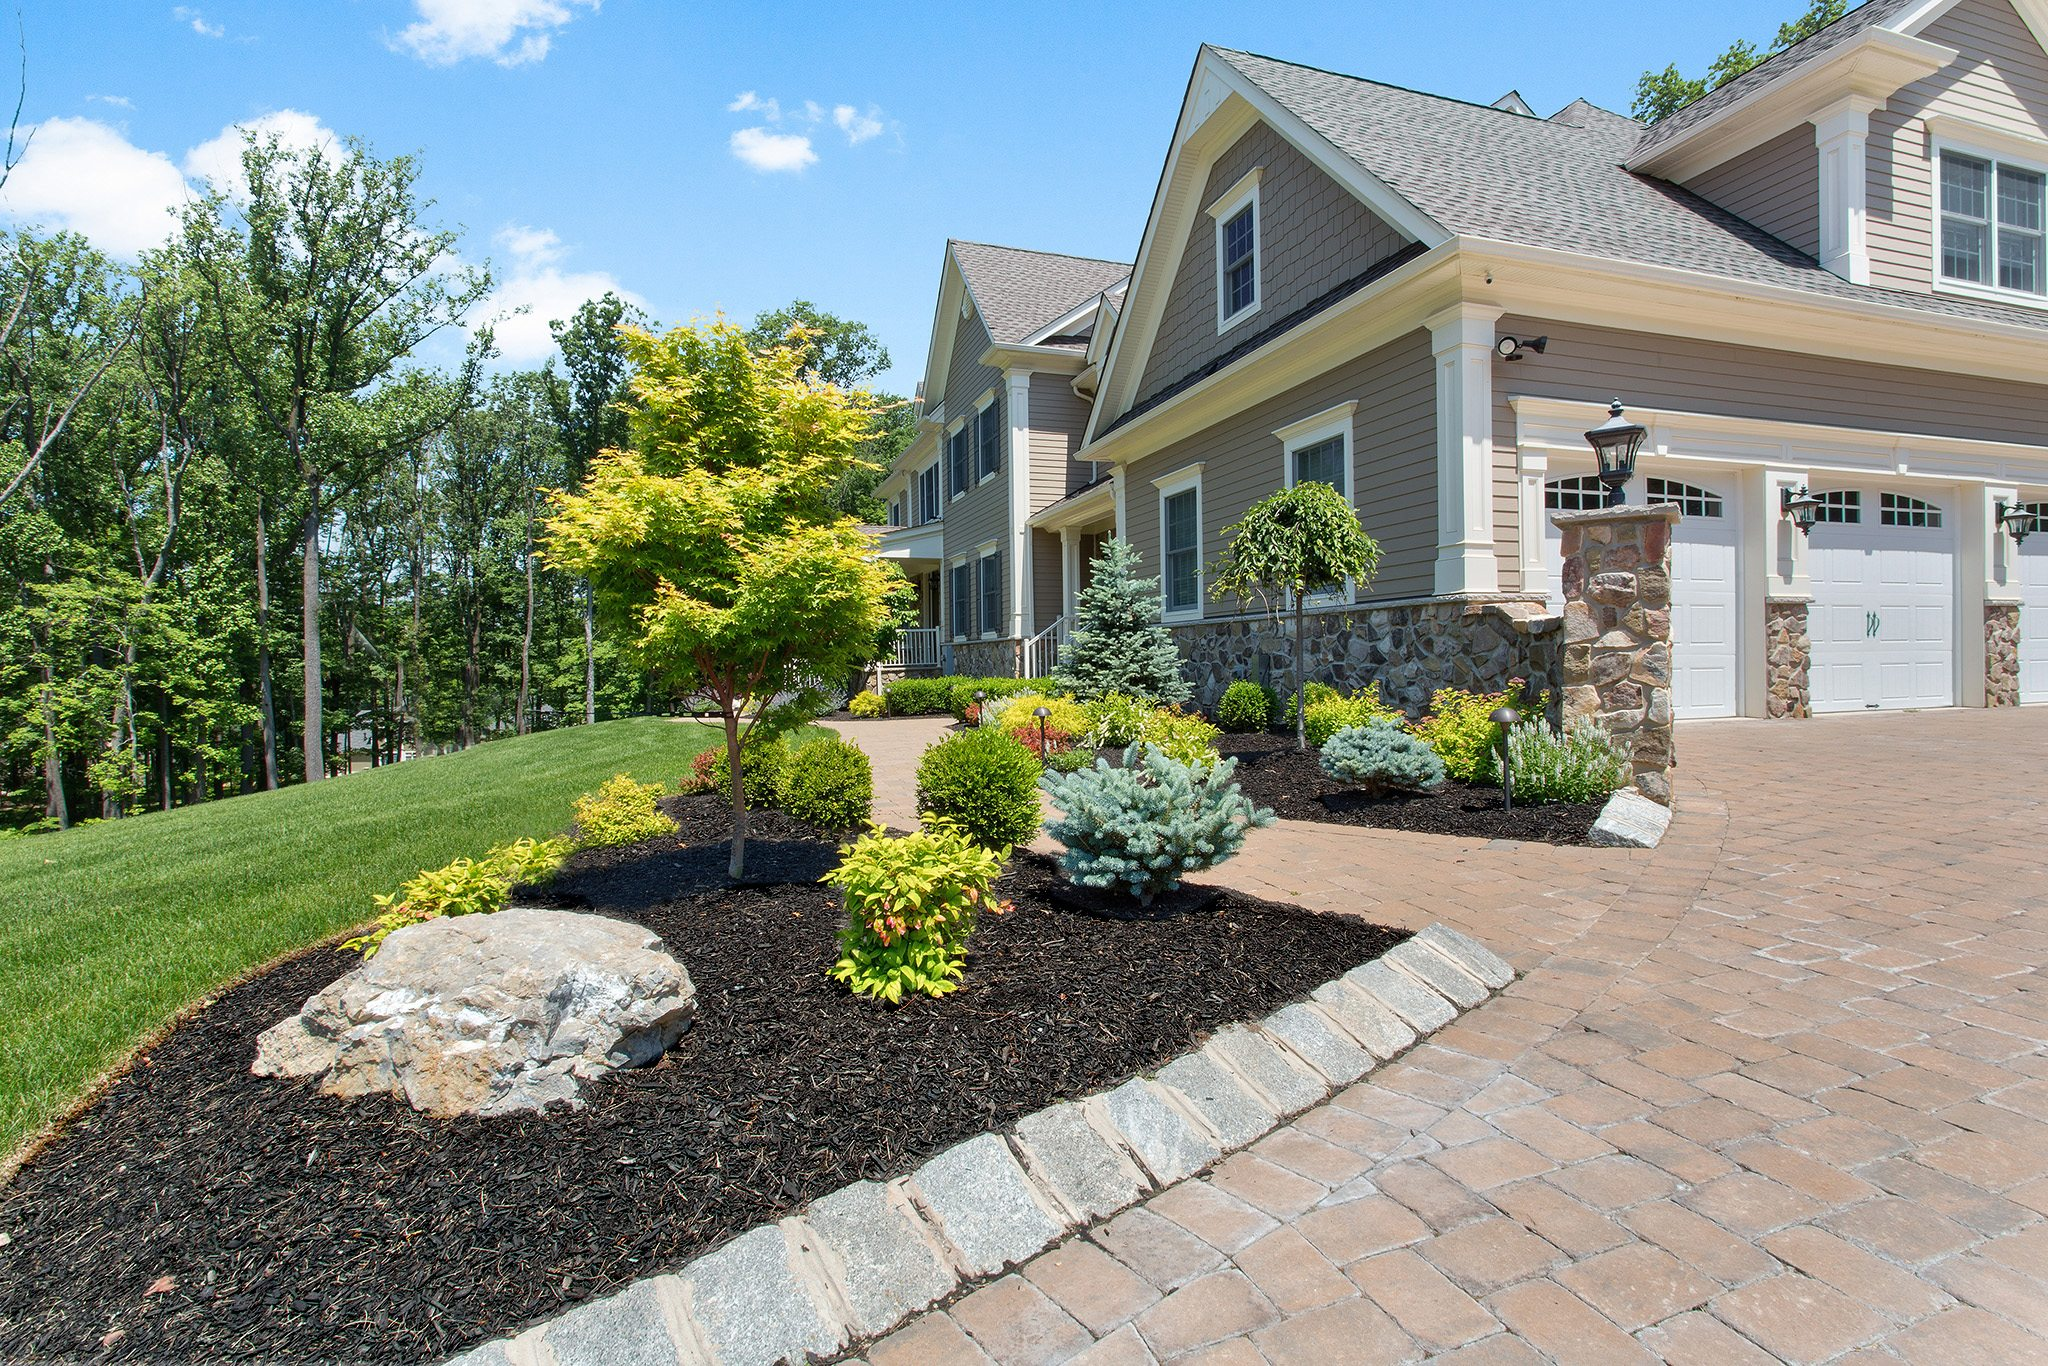 Choosing Plants and Shrubs For Your Home - Tips For Great Home Exteriors